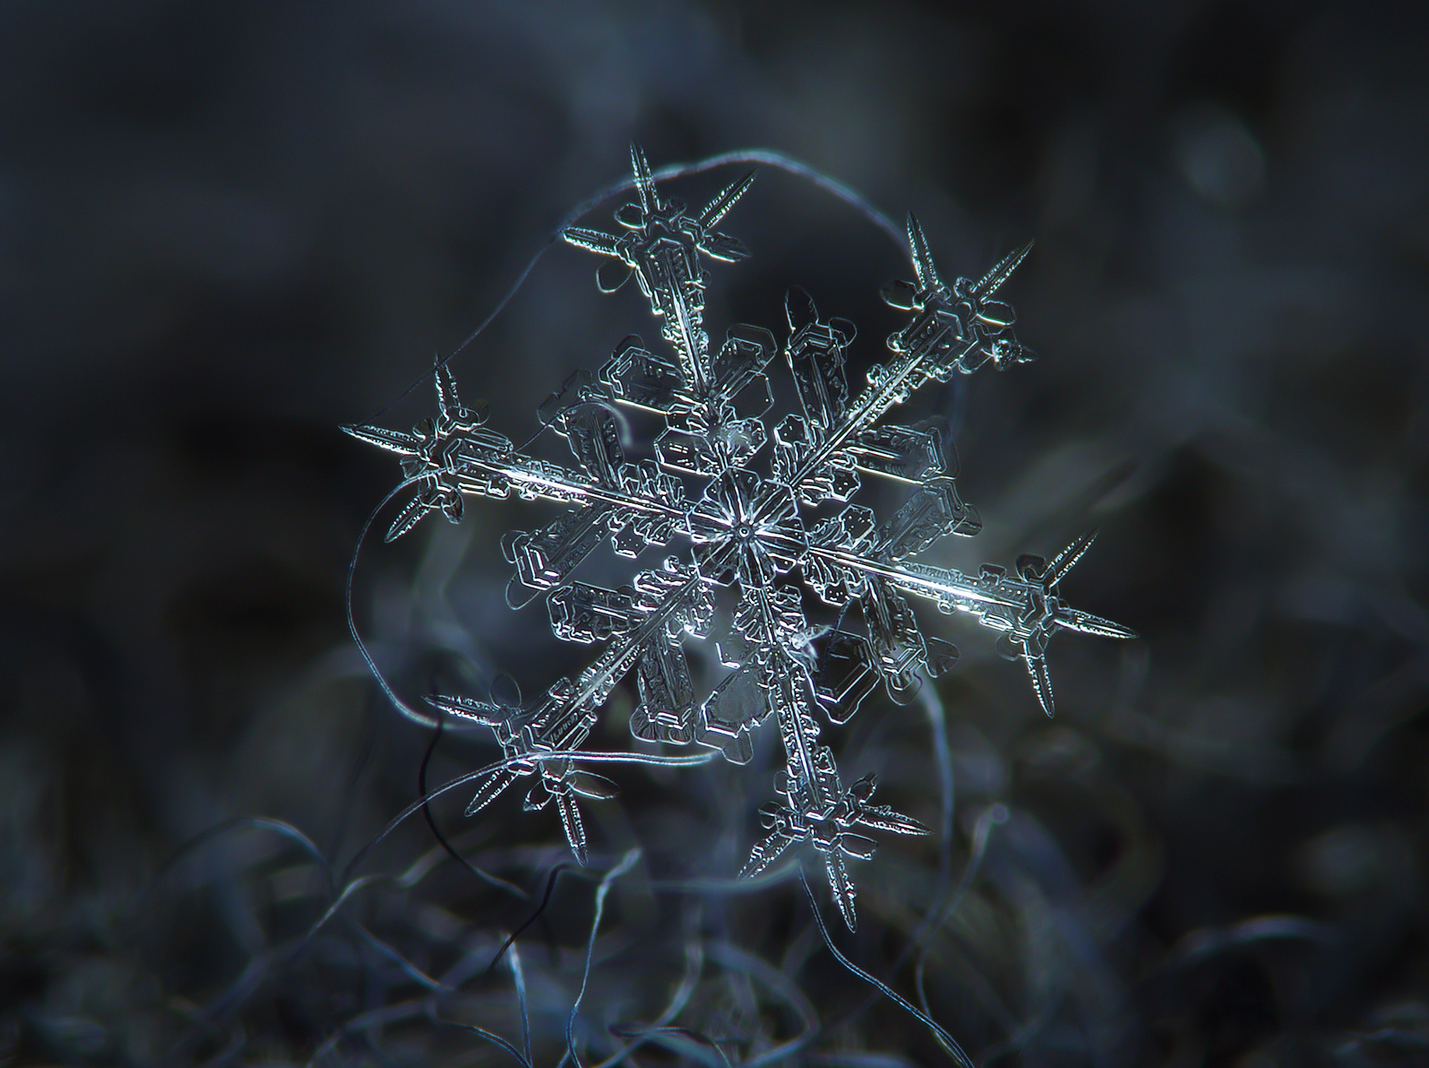 DIY Camera Rig Captures Close-ups of Snowflakes: Juxtapoz-AlexeyKljatov-01.png